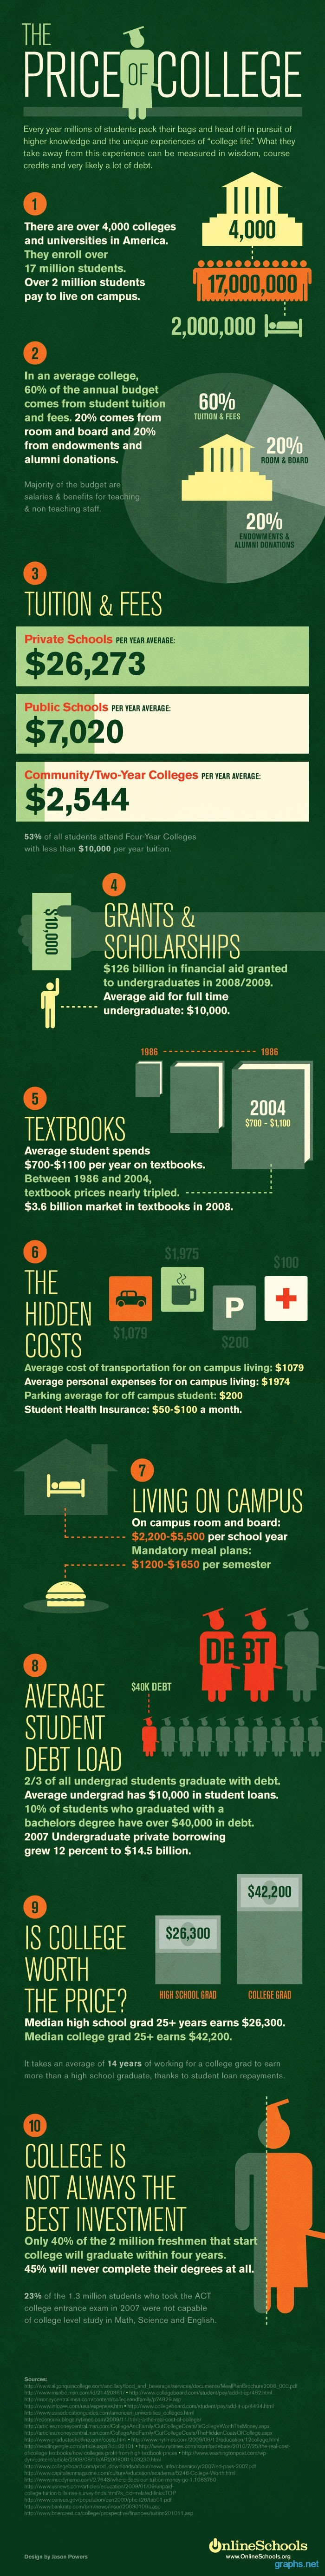 Cost of College Education